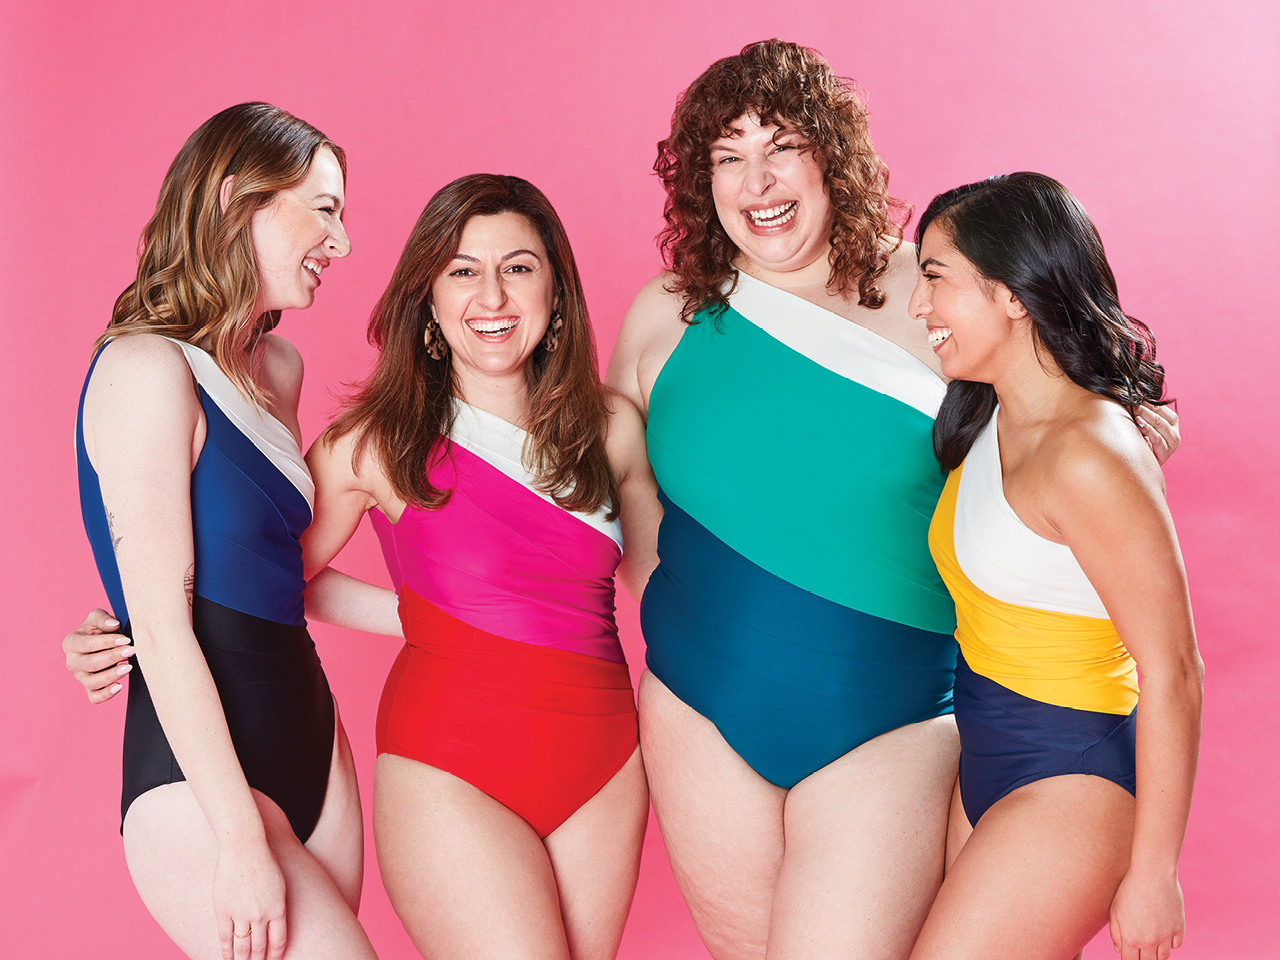 A group of women wearing the Summersalt one-piece Sidestroke swimsuit in various colour against a pink background.